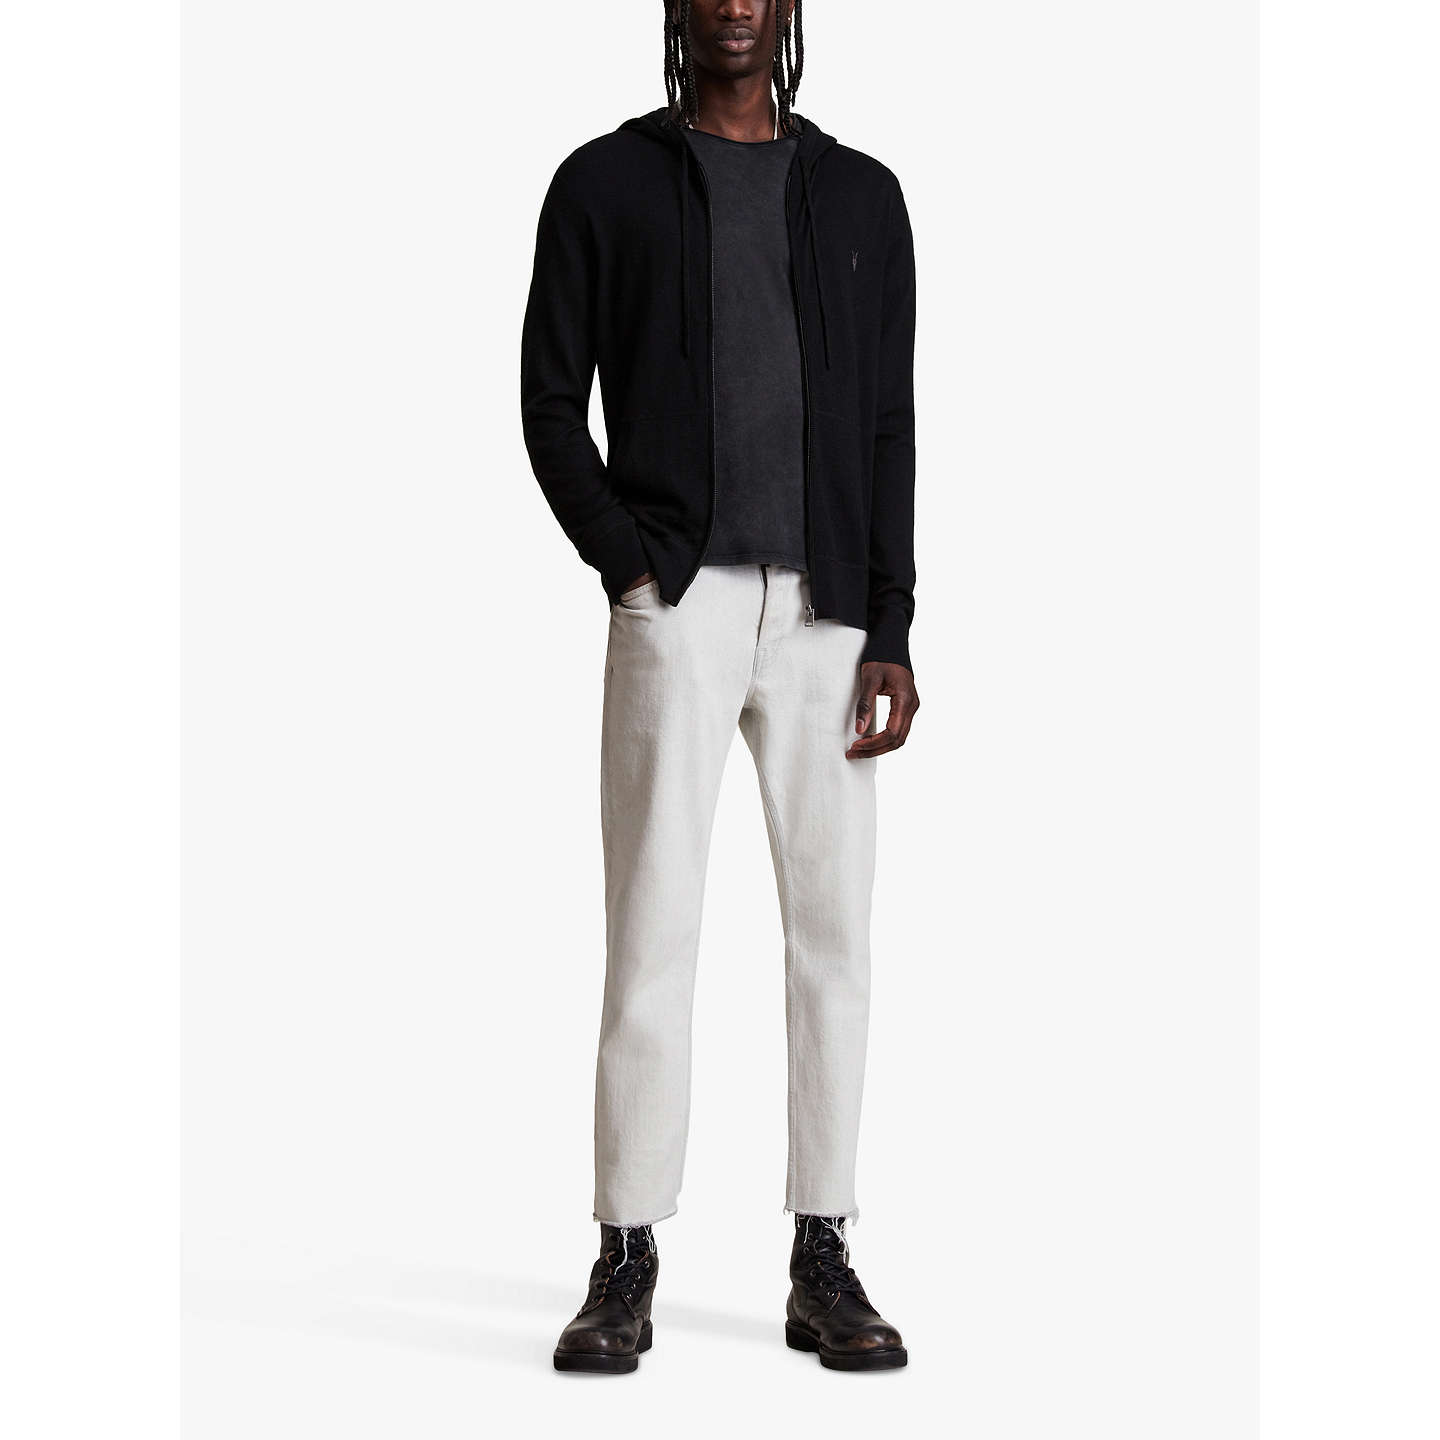 BuyAllSaints Mode Merino Wool Zip Up Hoodie, Black, XS Online at johnlewis.com